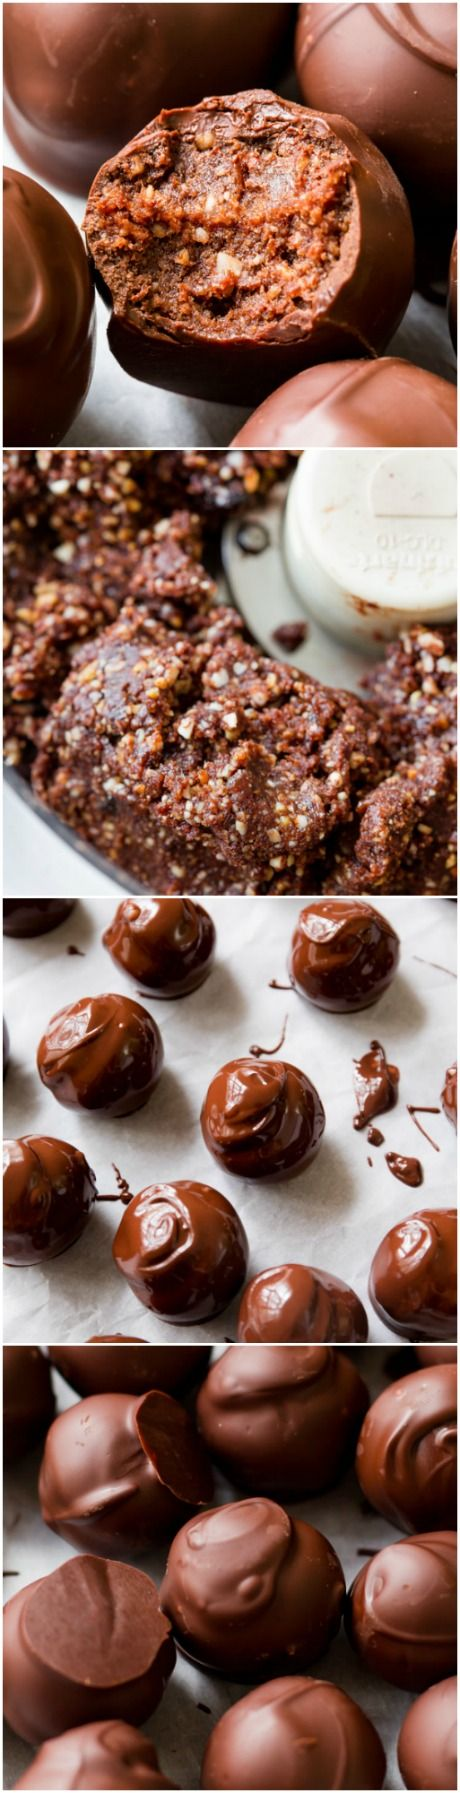 Seriously! HEALTHY truffles made with dark chocolate. Easy recipe found on sallysbakingaddiction.com